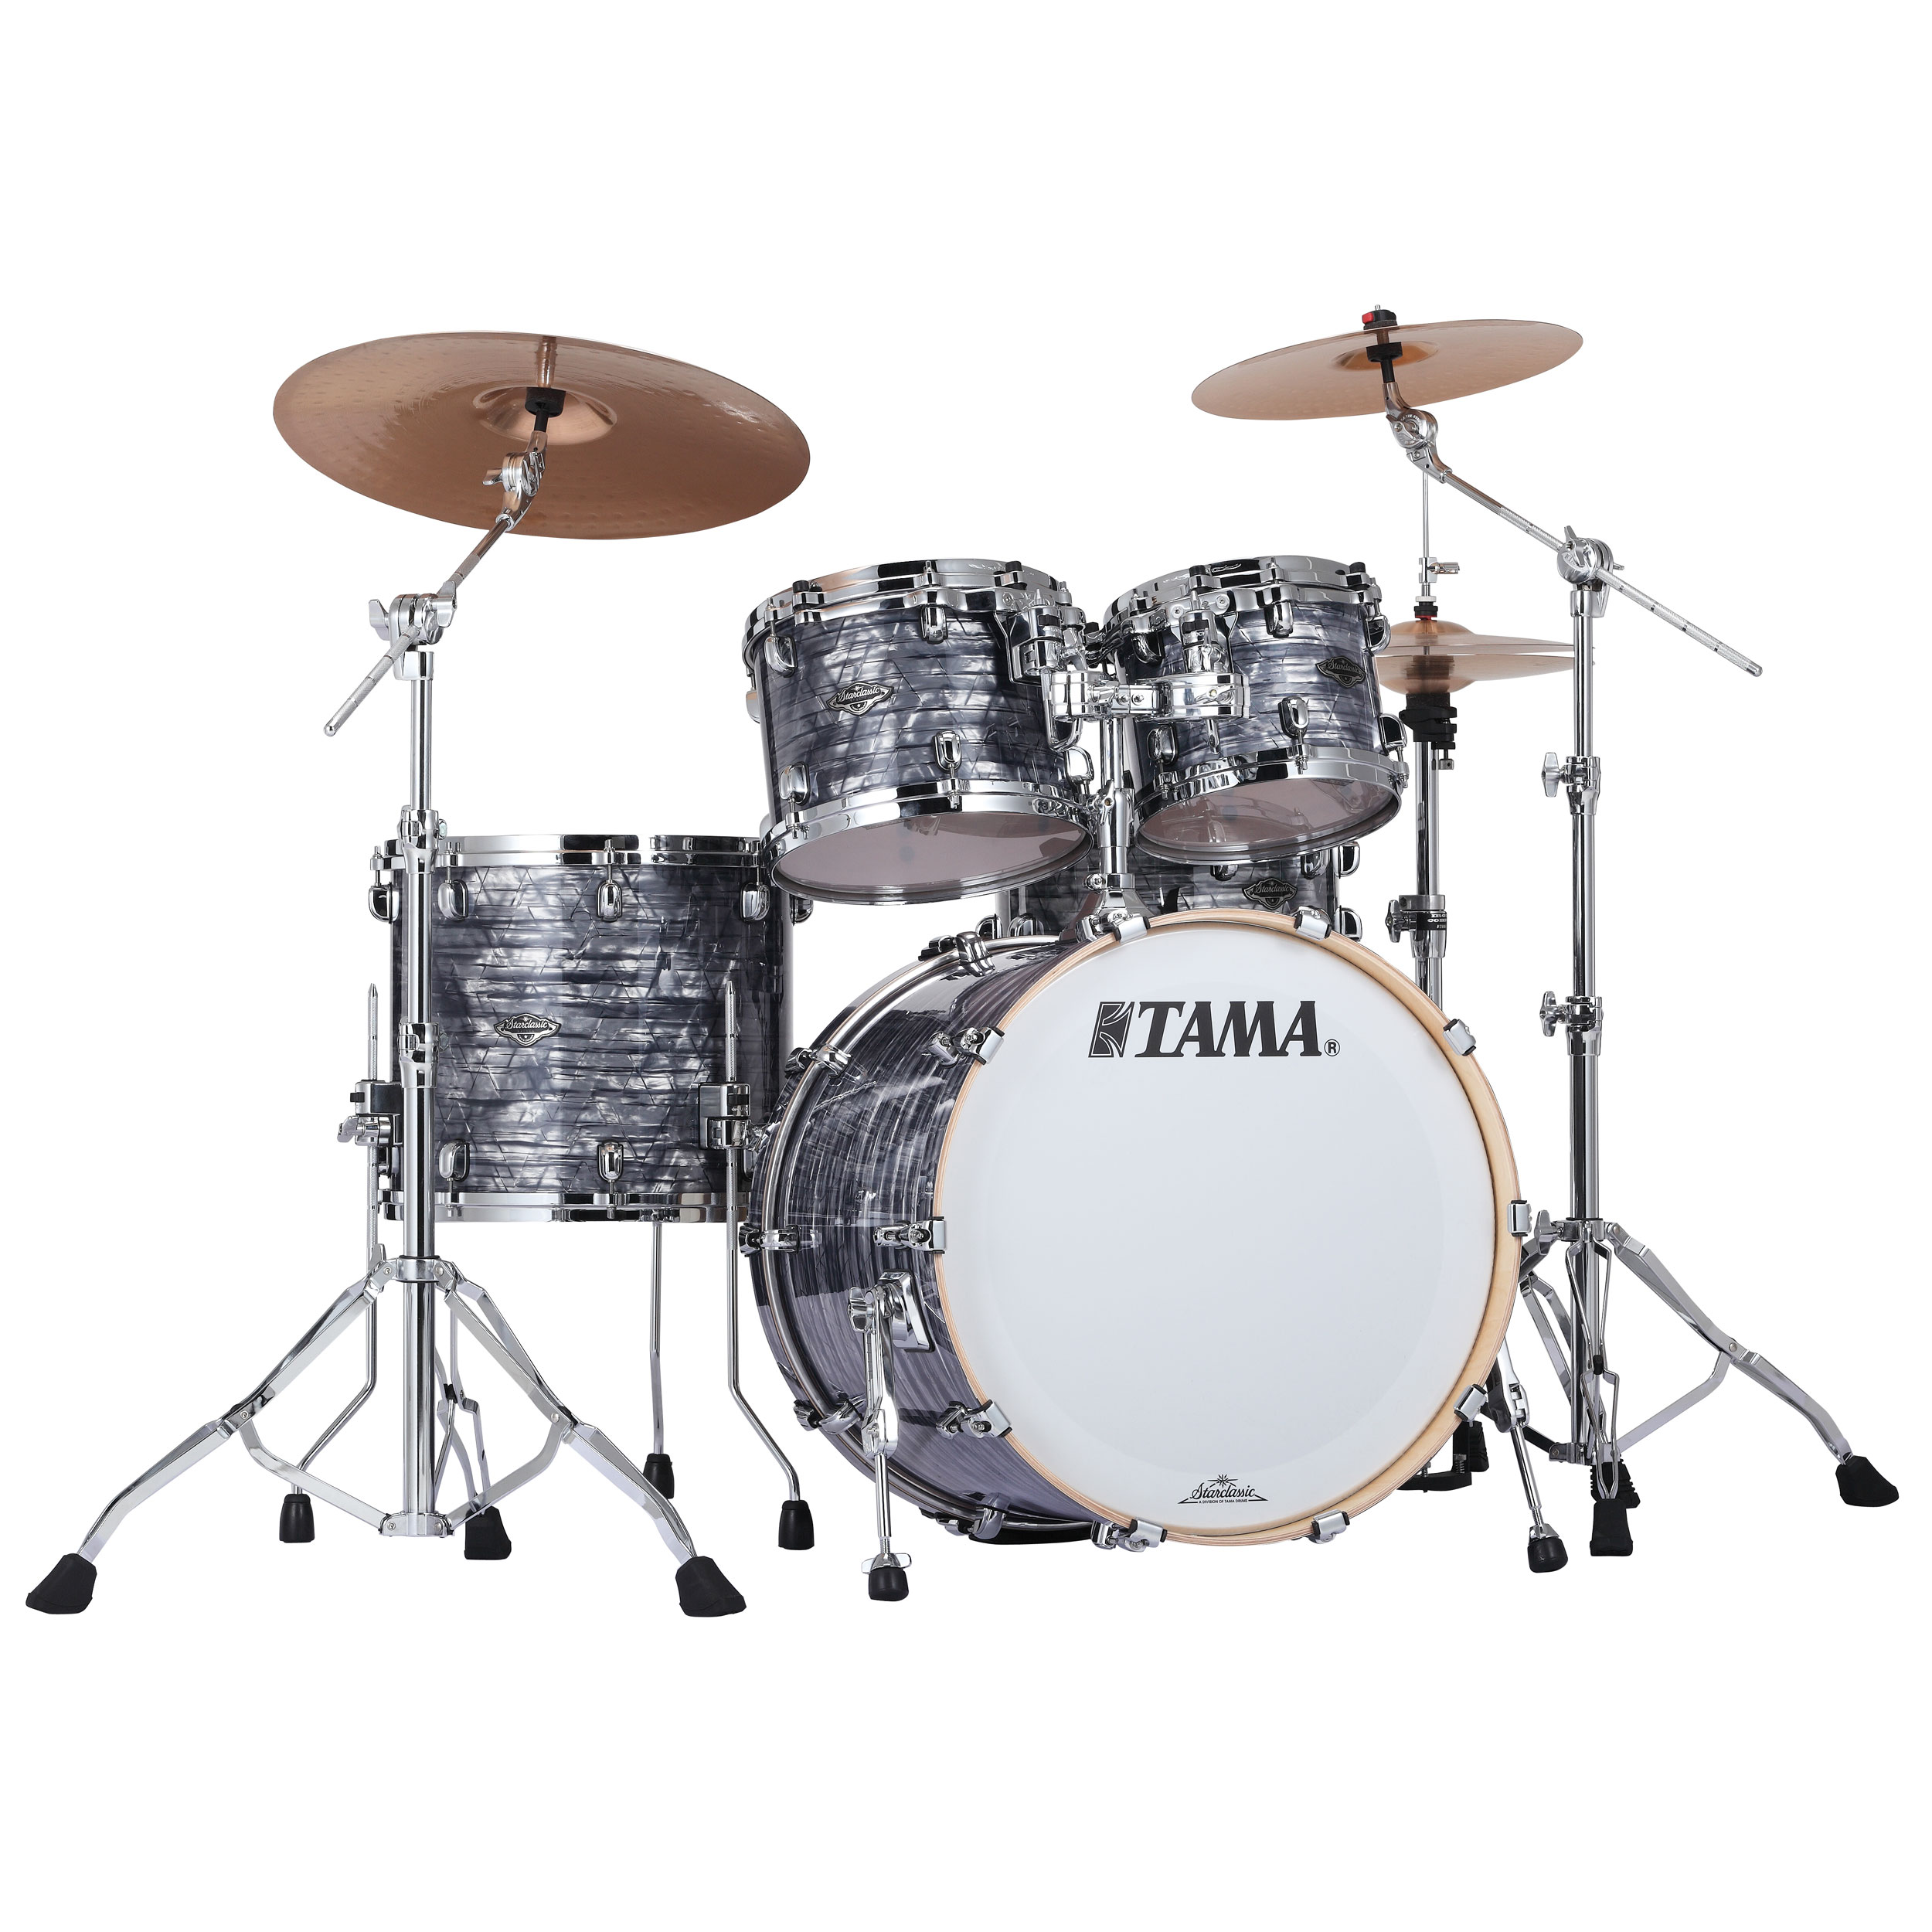 "Tama Starclassic Performer B/B 4-Piece Drum Set Shell Pack (22"" Bass, 10/12/16"" Toms) in Wrap Finish"